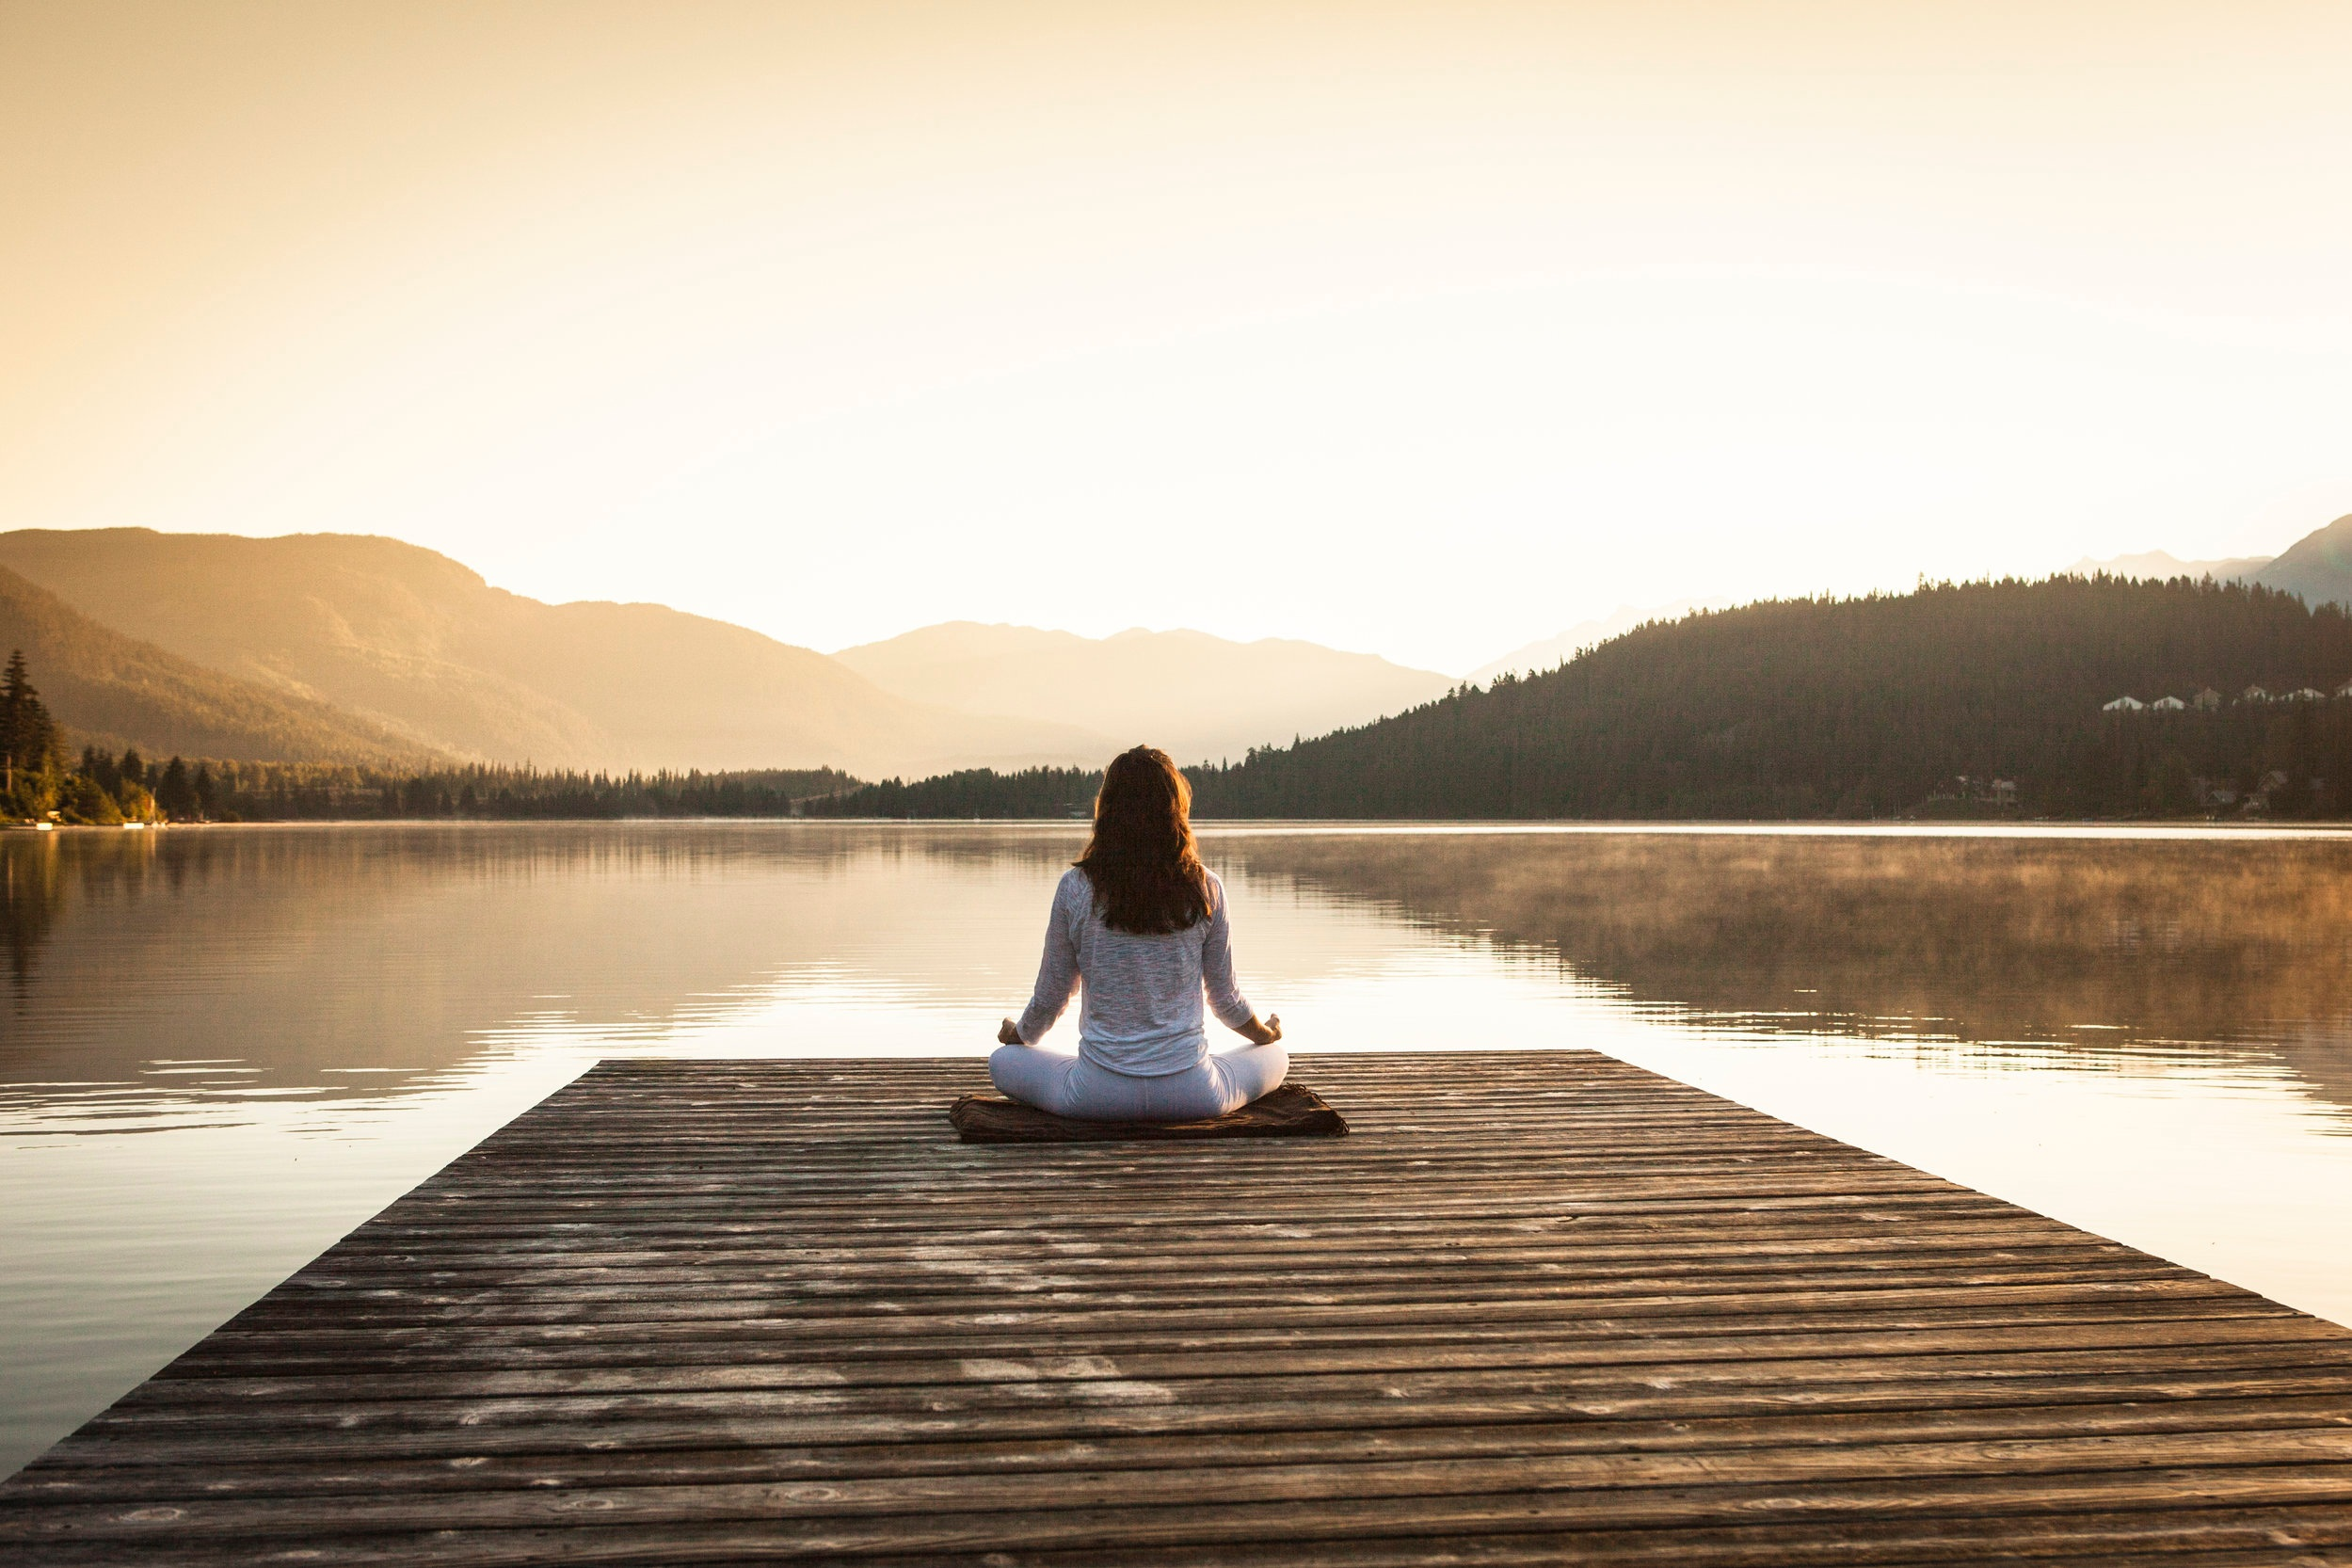 Balanced Breathing - Kathleen Frizzi will guide us through a number of breathing exercises and techniques designed help manage the body's response to stress. Through actively working with the breath, we can enter the holiday season with confidence and peace.